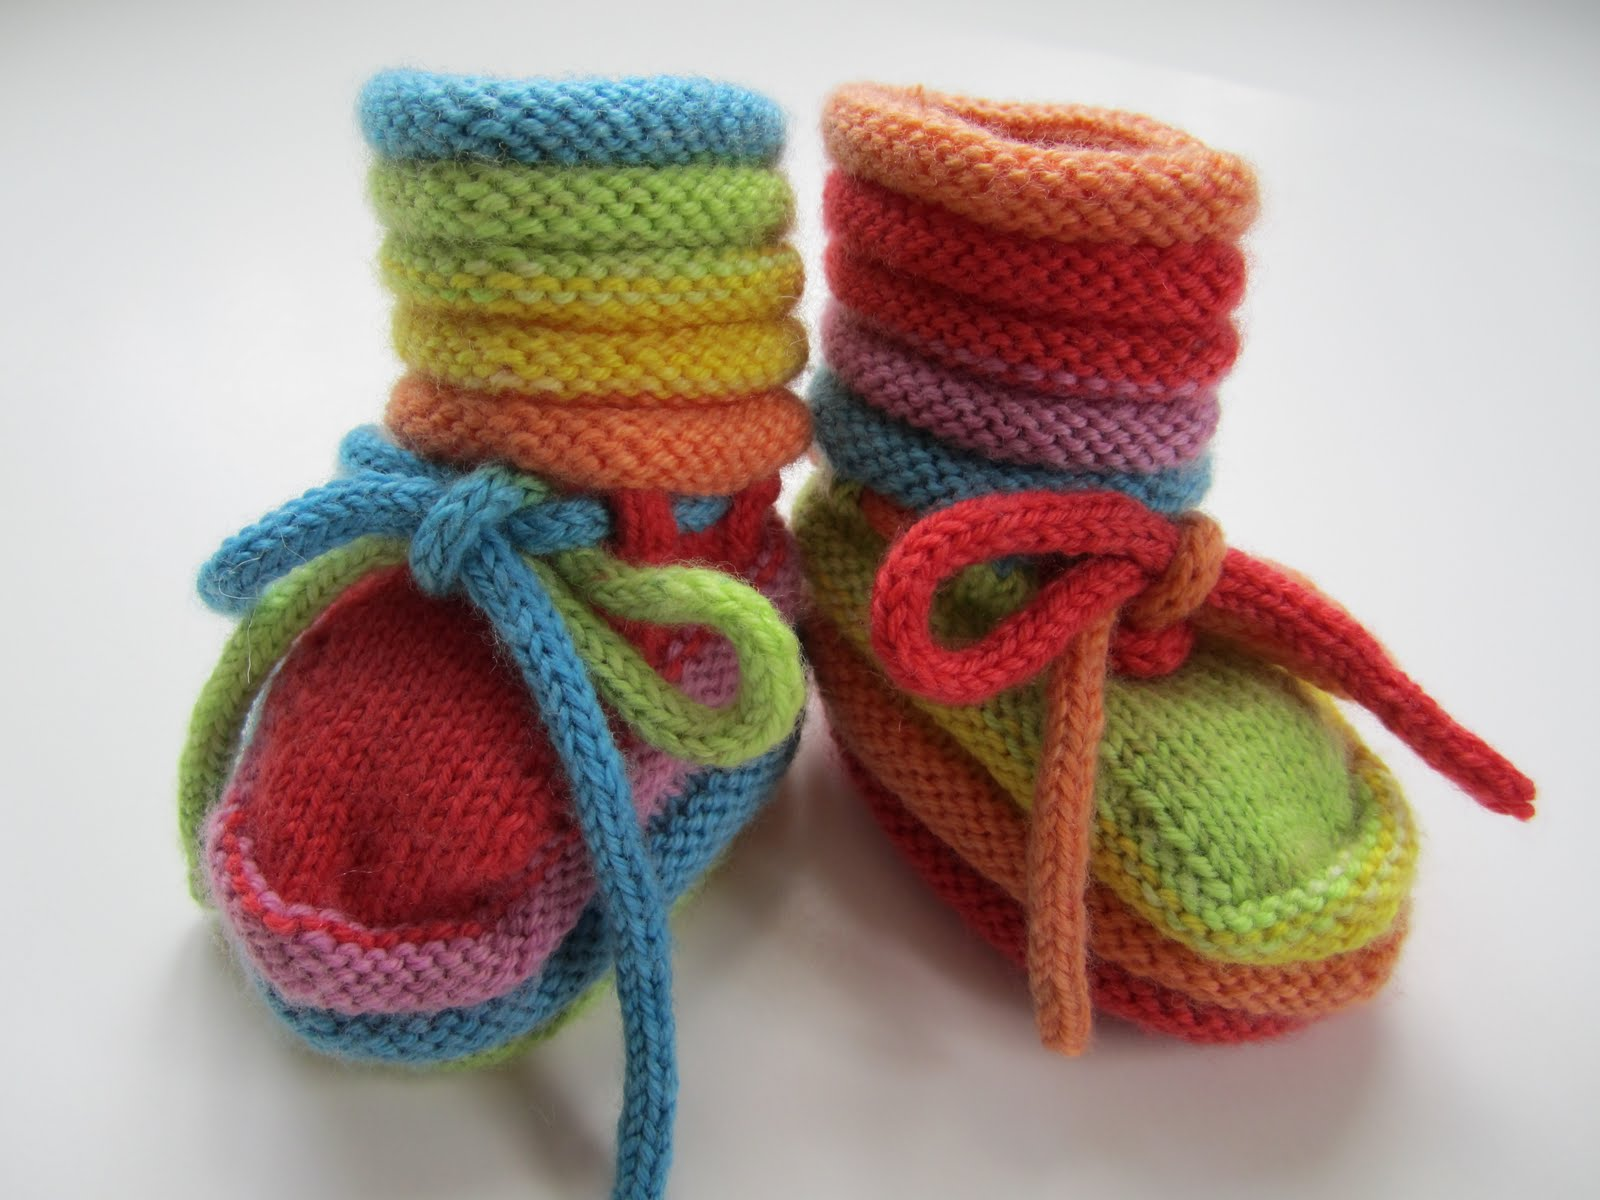 Knitting Baby Booties Patterns : Baby booties knit patterns a knitting